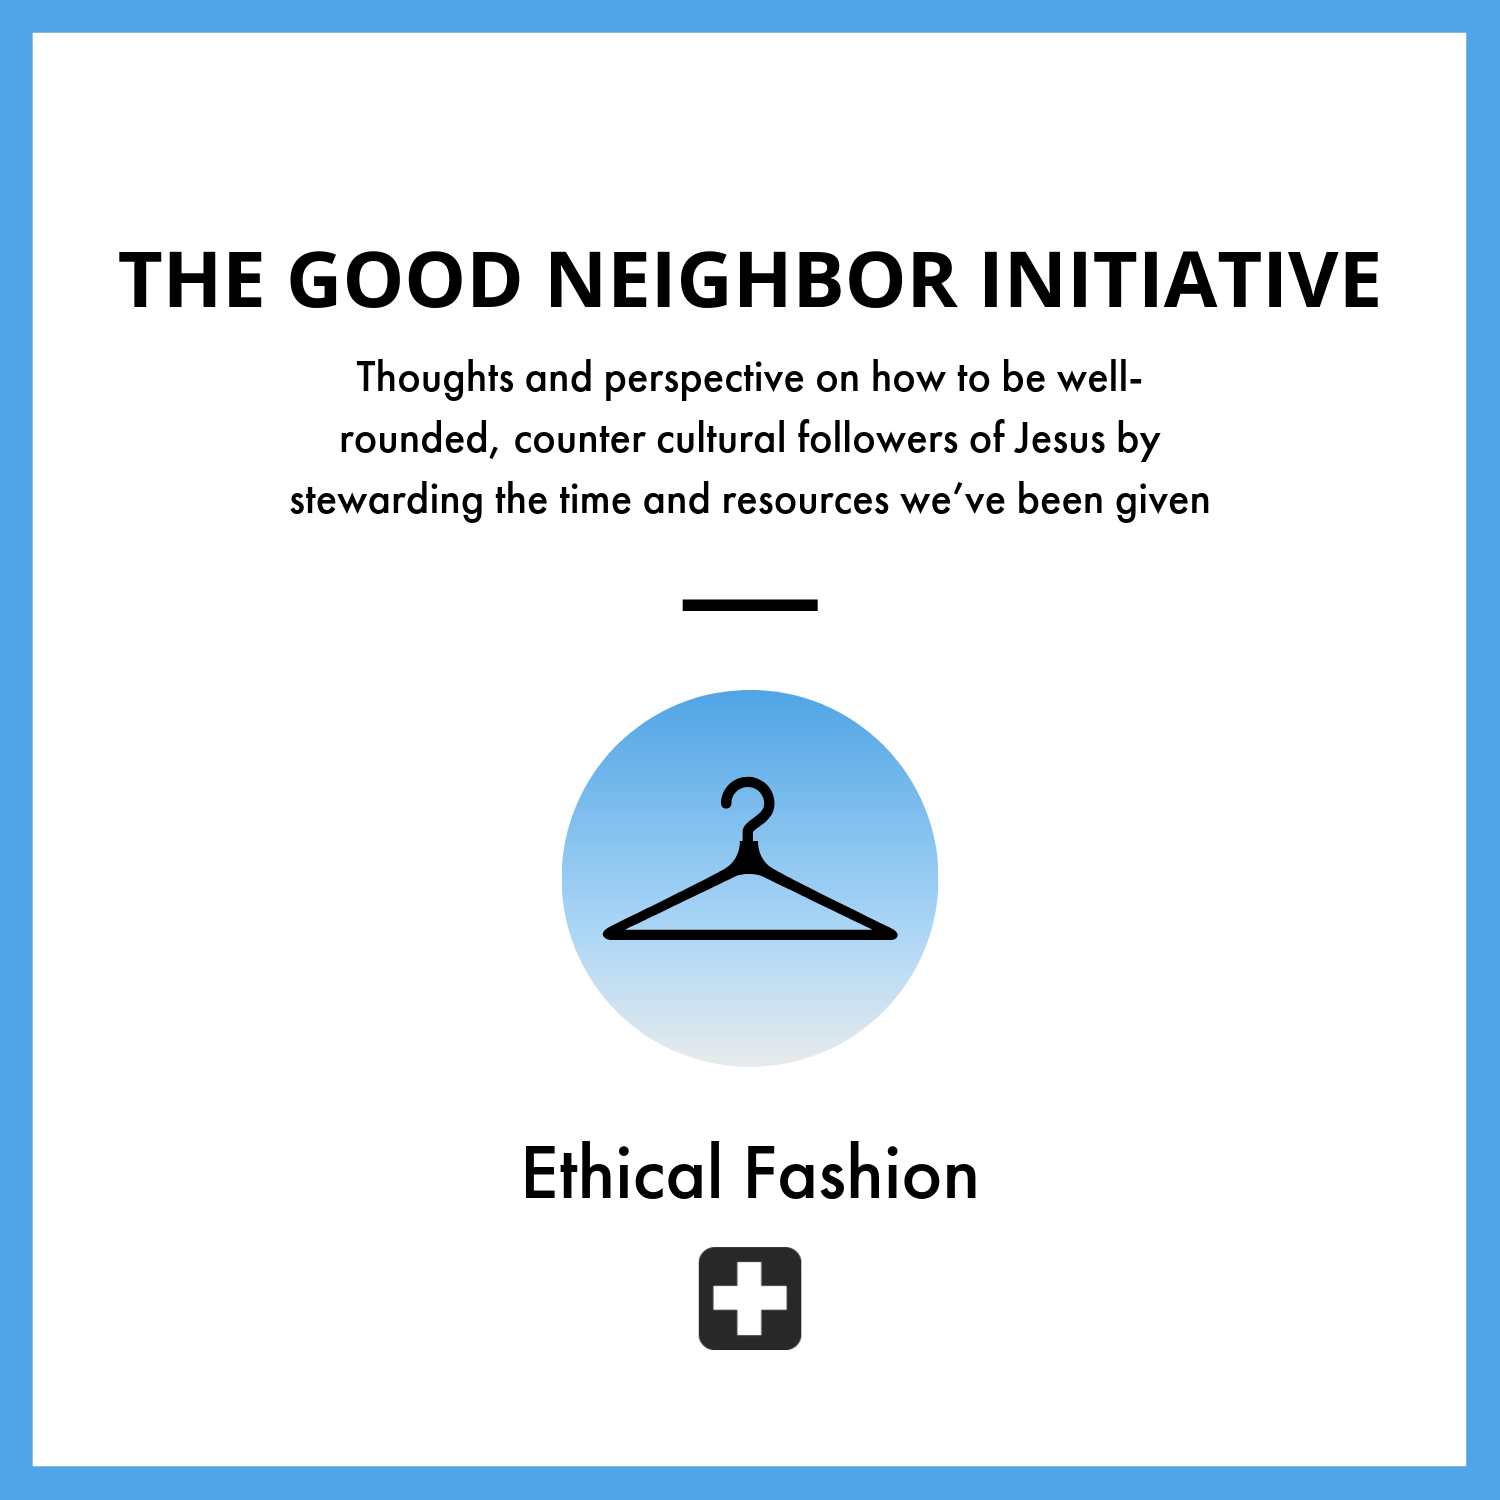 The Good Neighbor Initiative_ Ethical Fashion.png